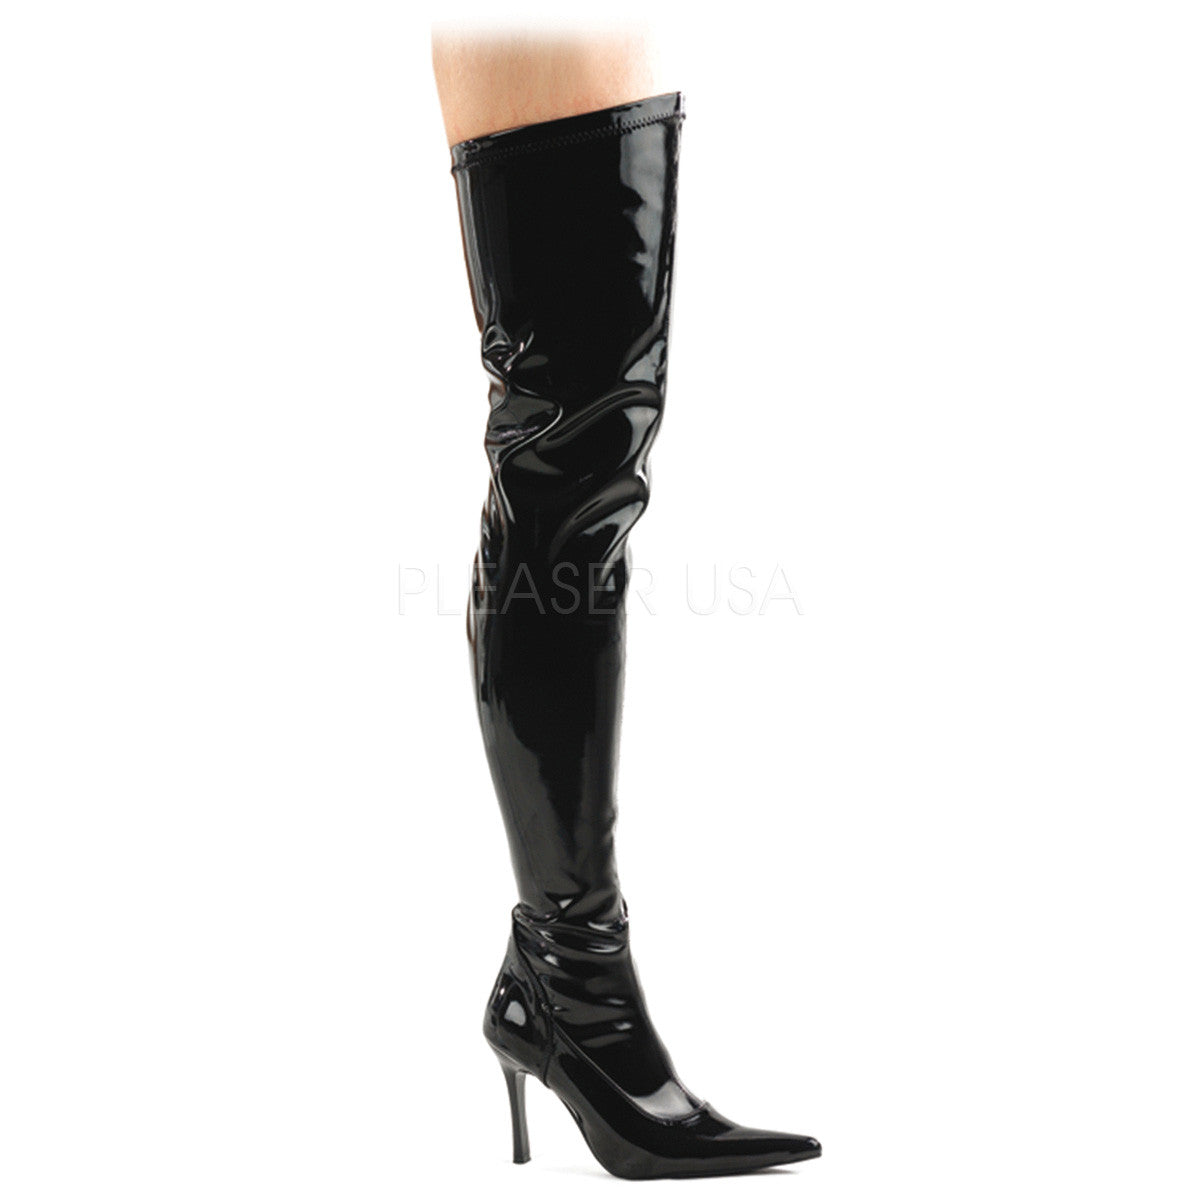 FUNTASMA LUST-3000 Black Stretch Pat Thigh High Boots - Shoecup.com